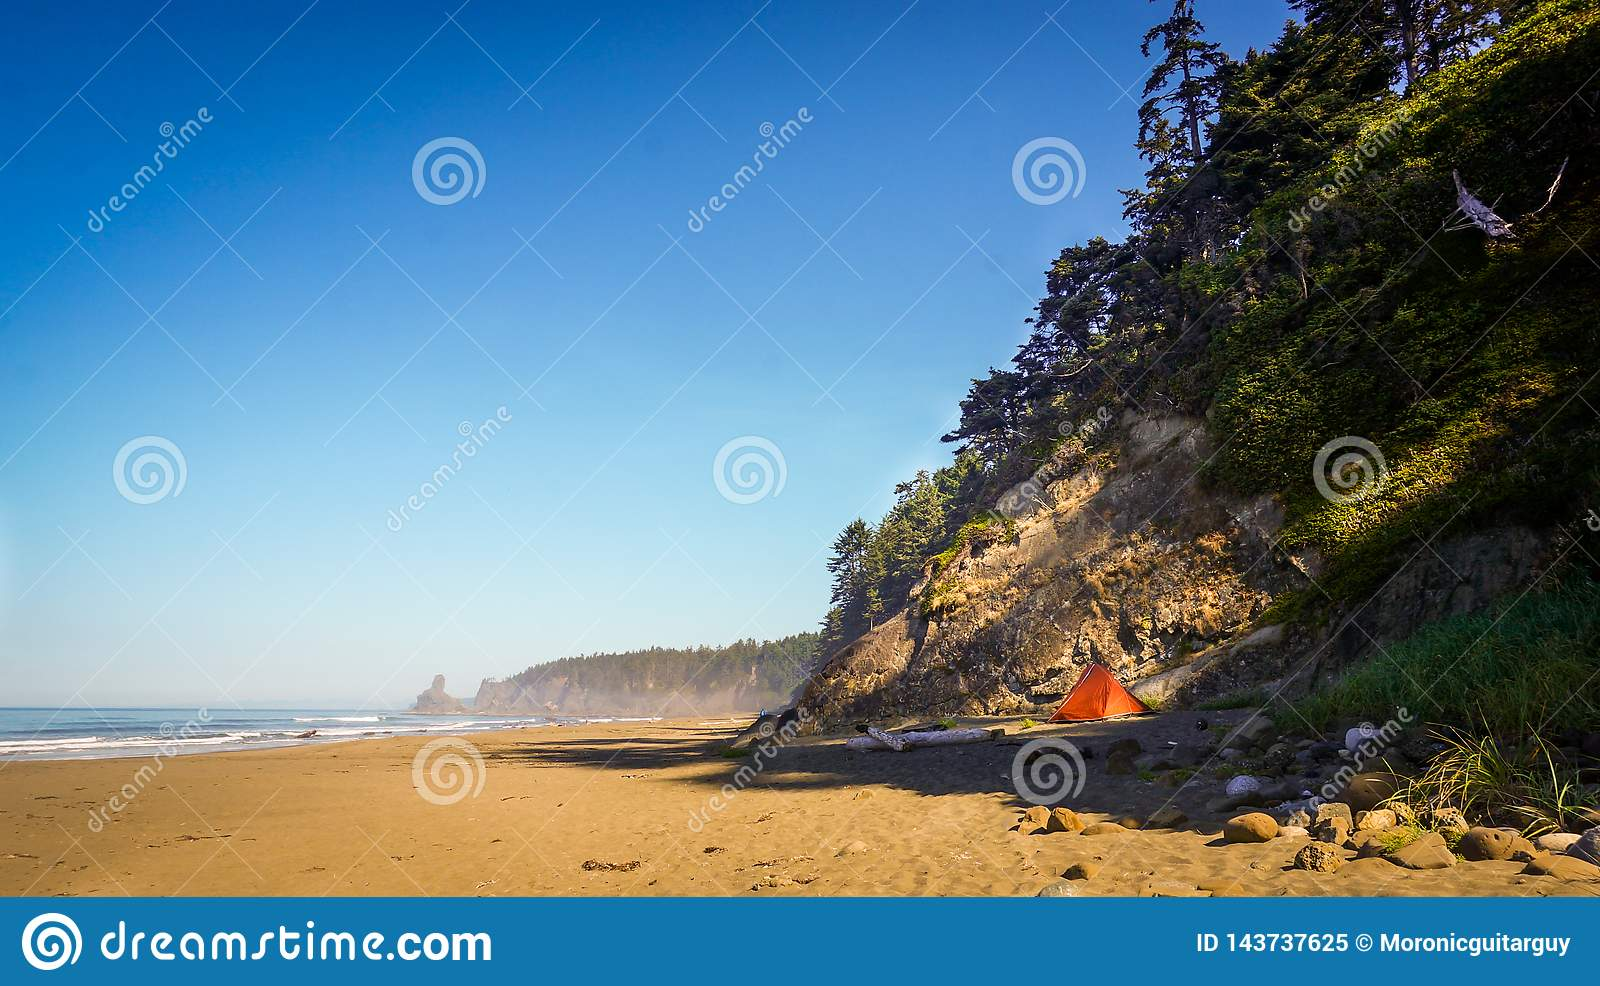 Tent at the beach by cliff